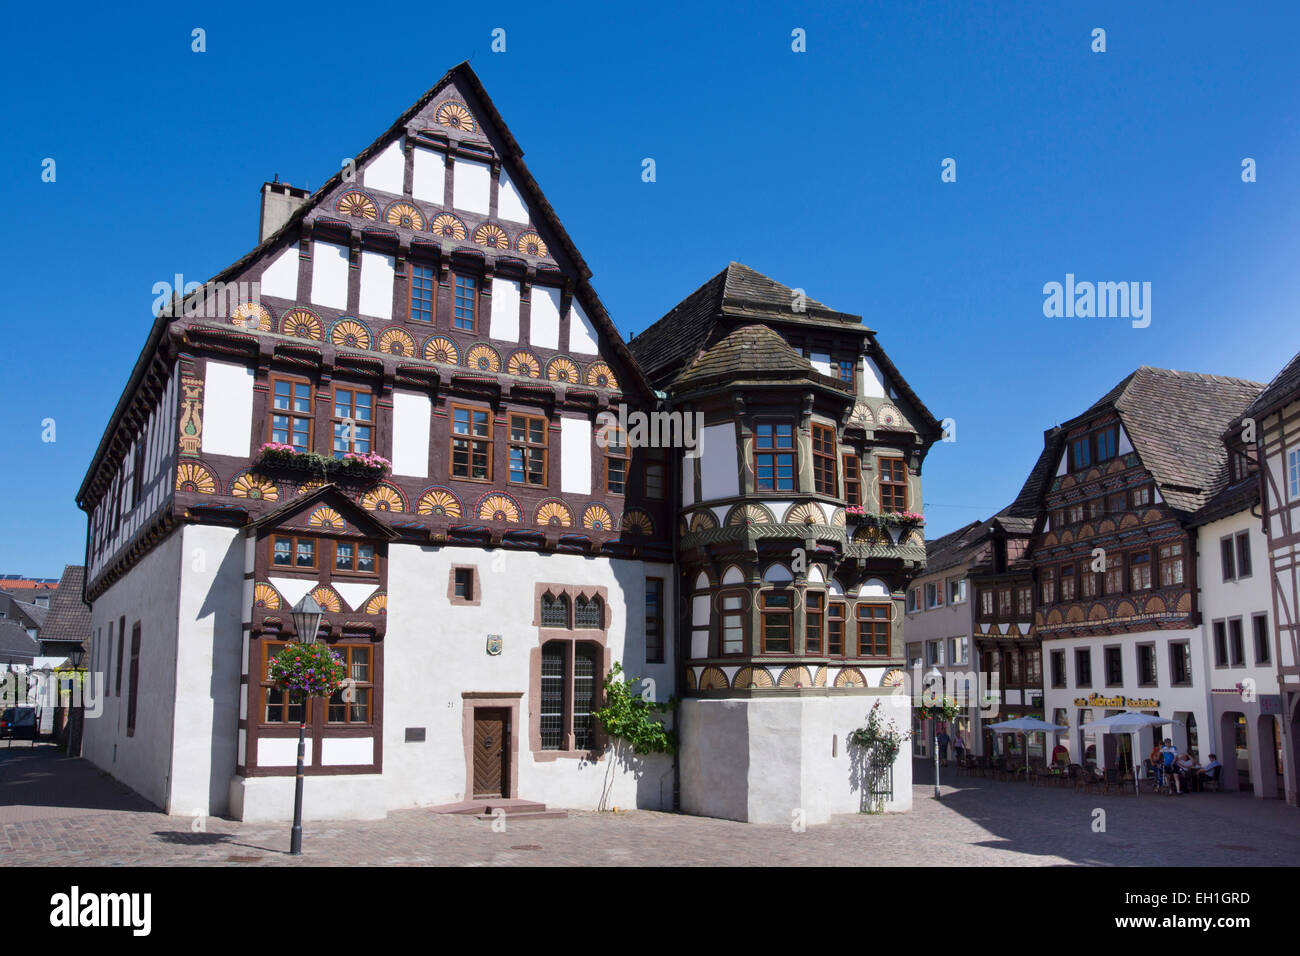 dean's house from 1561, hoexter, north rhine-westphalia, germany, europe - Stock Image